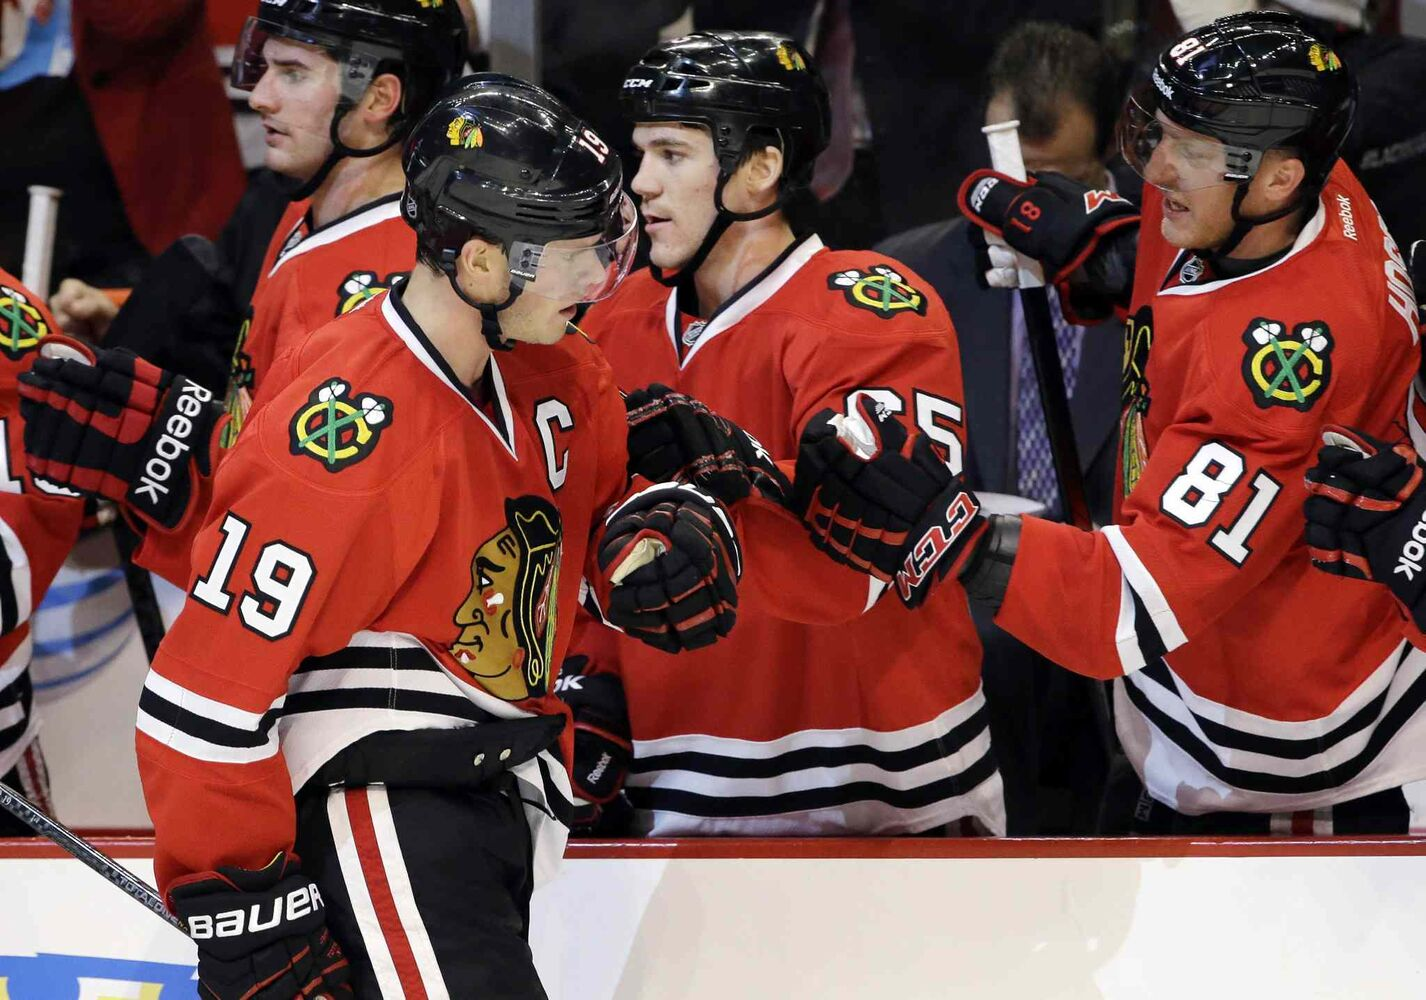 Chicago Blackhawks' Jonathan Toews (19) celebrates with teammates after scoring a goal during the first period.